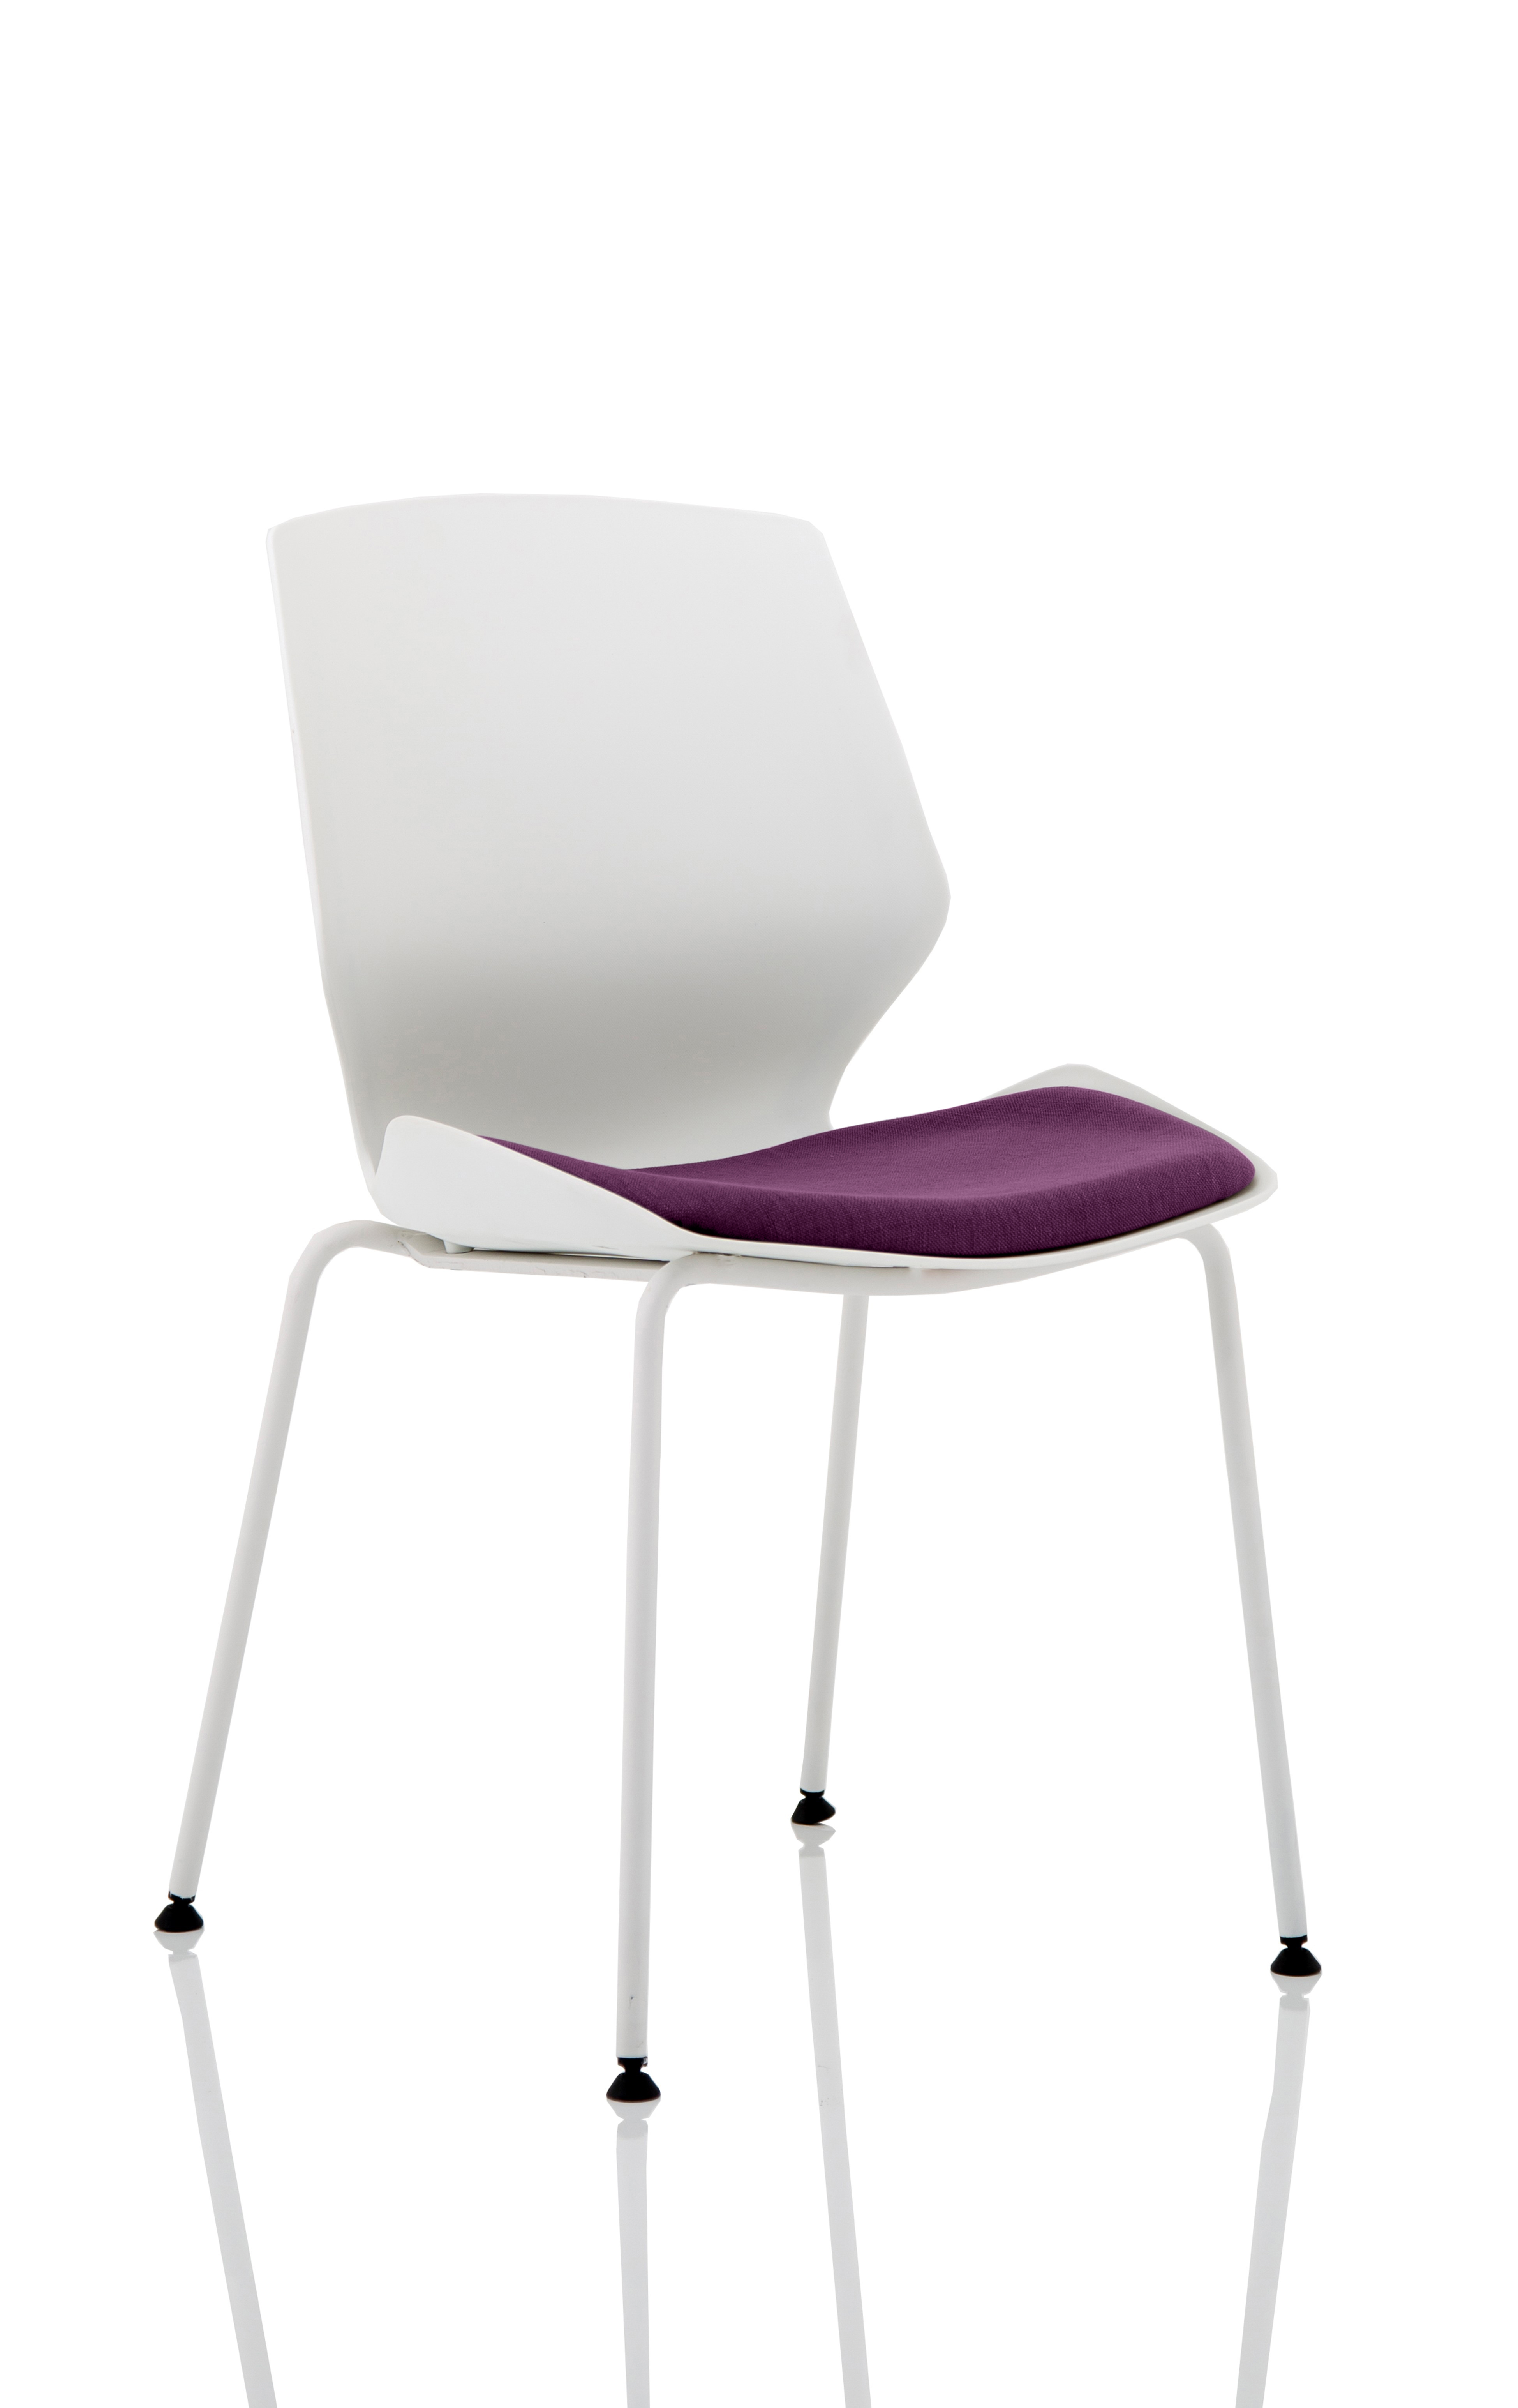 Stacking Chairs Florence White Frame Visitor Chair in Tansy Purple KCUP1537